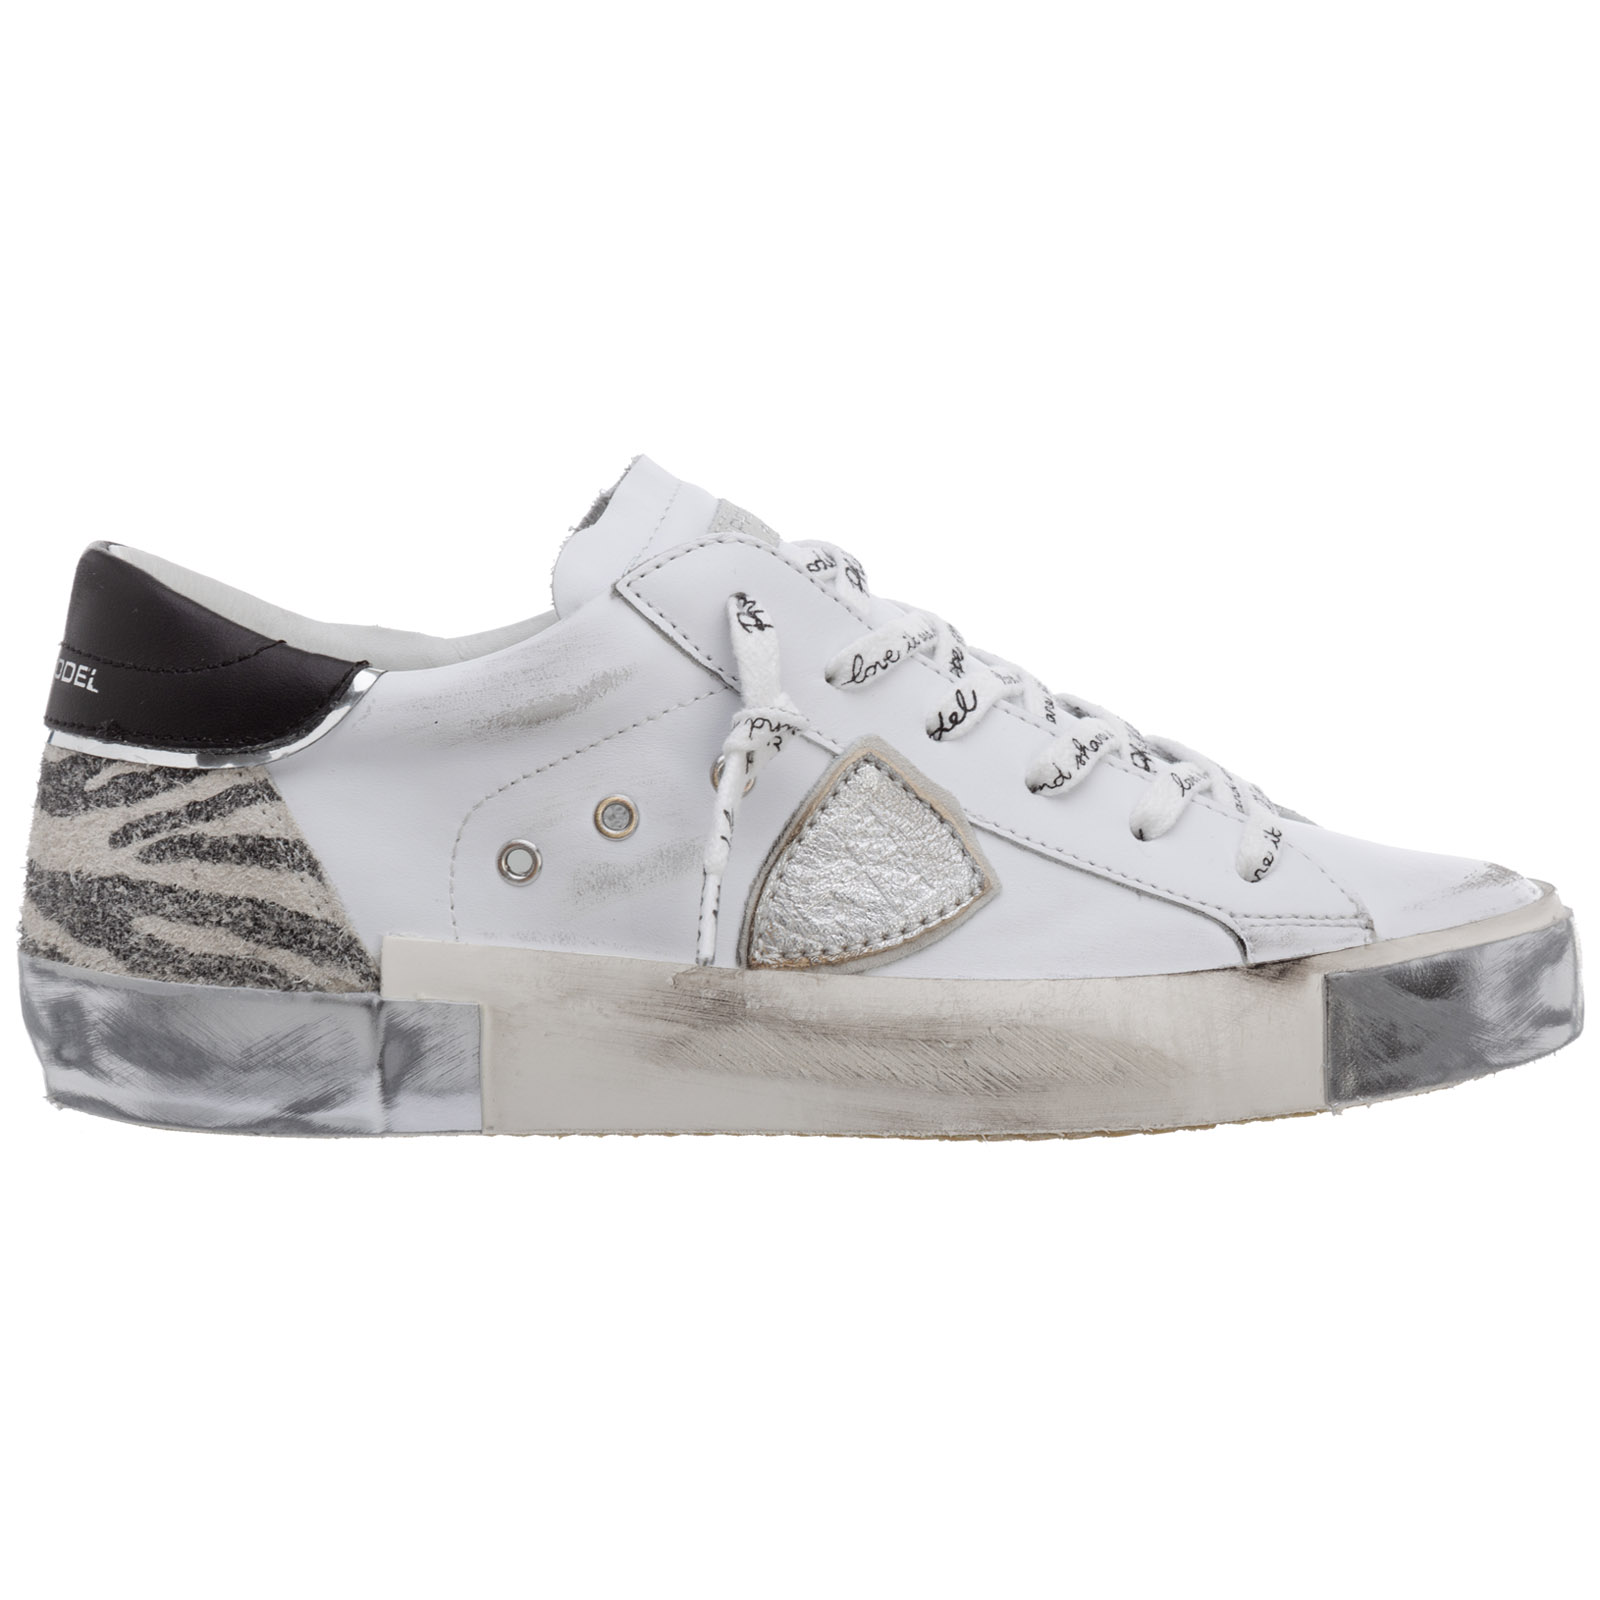 Philippe Model WOMEN'S SHOES LEATHER TRAINERS SNEAKERS PRSX